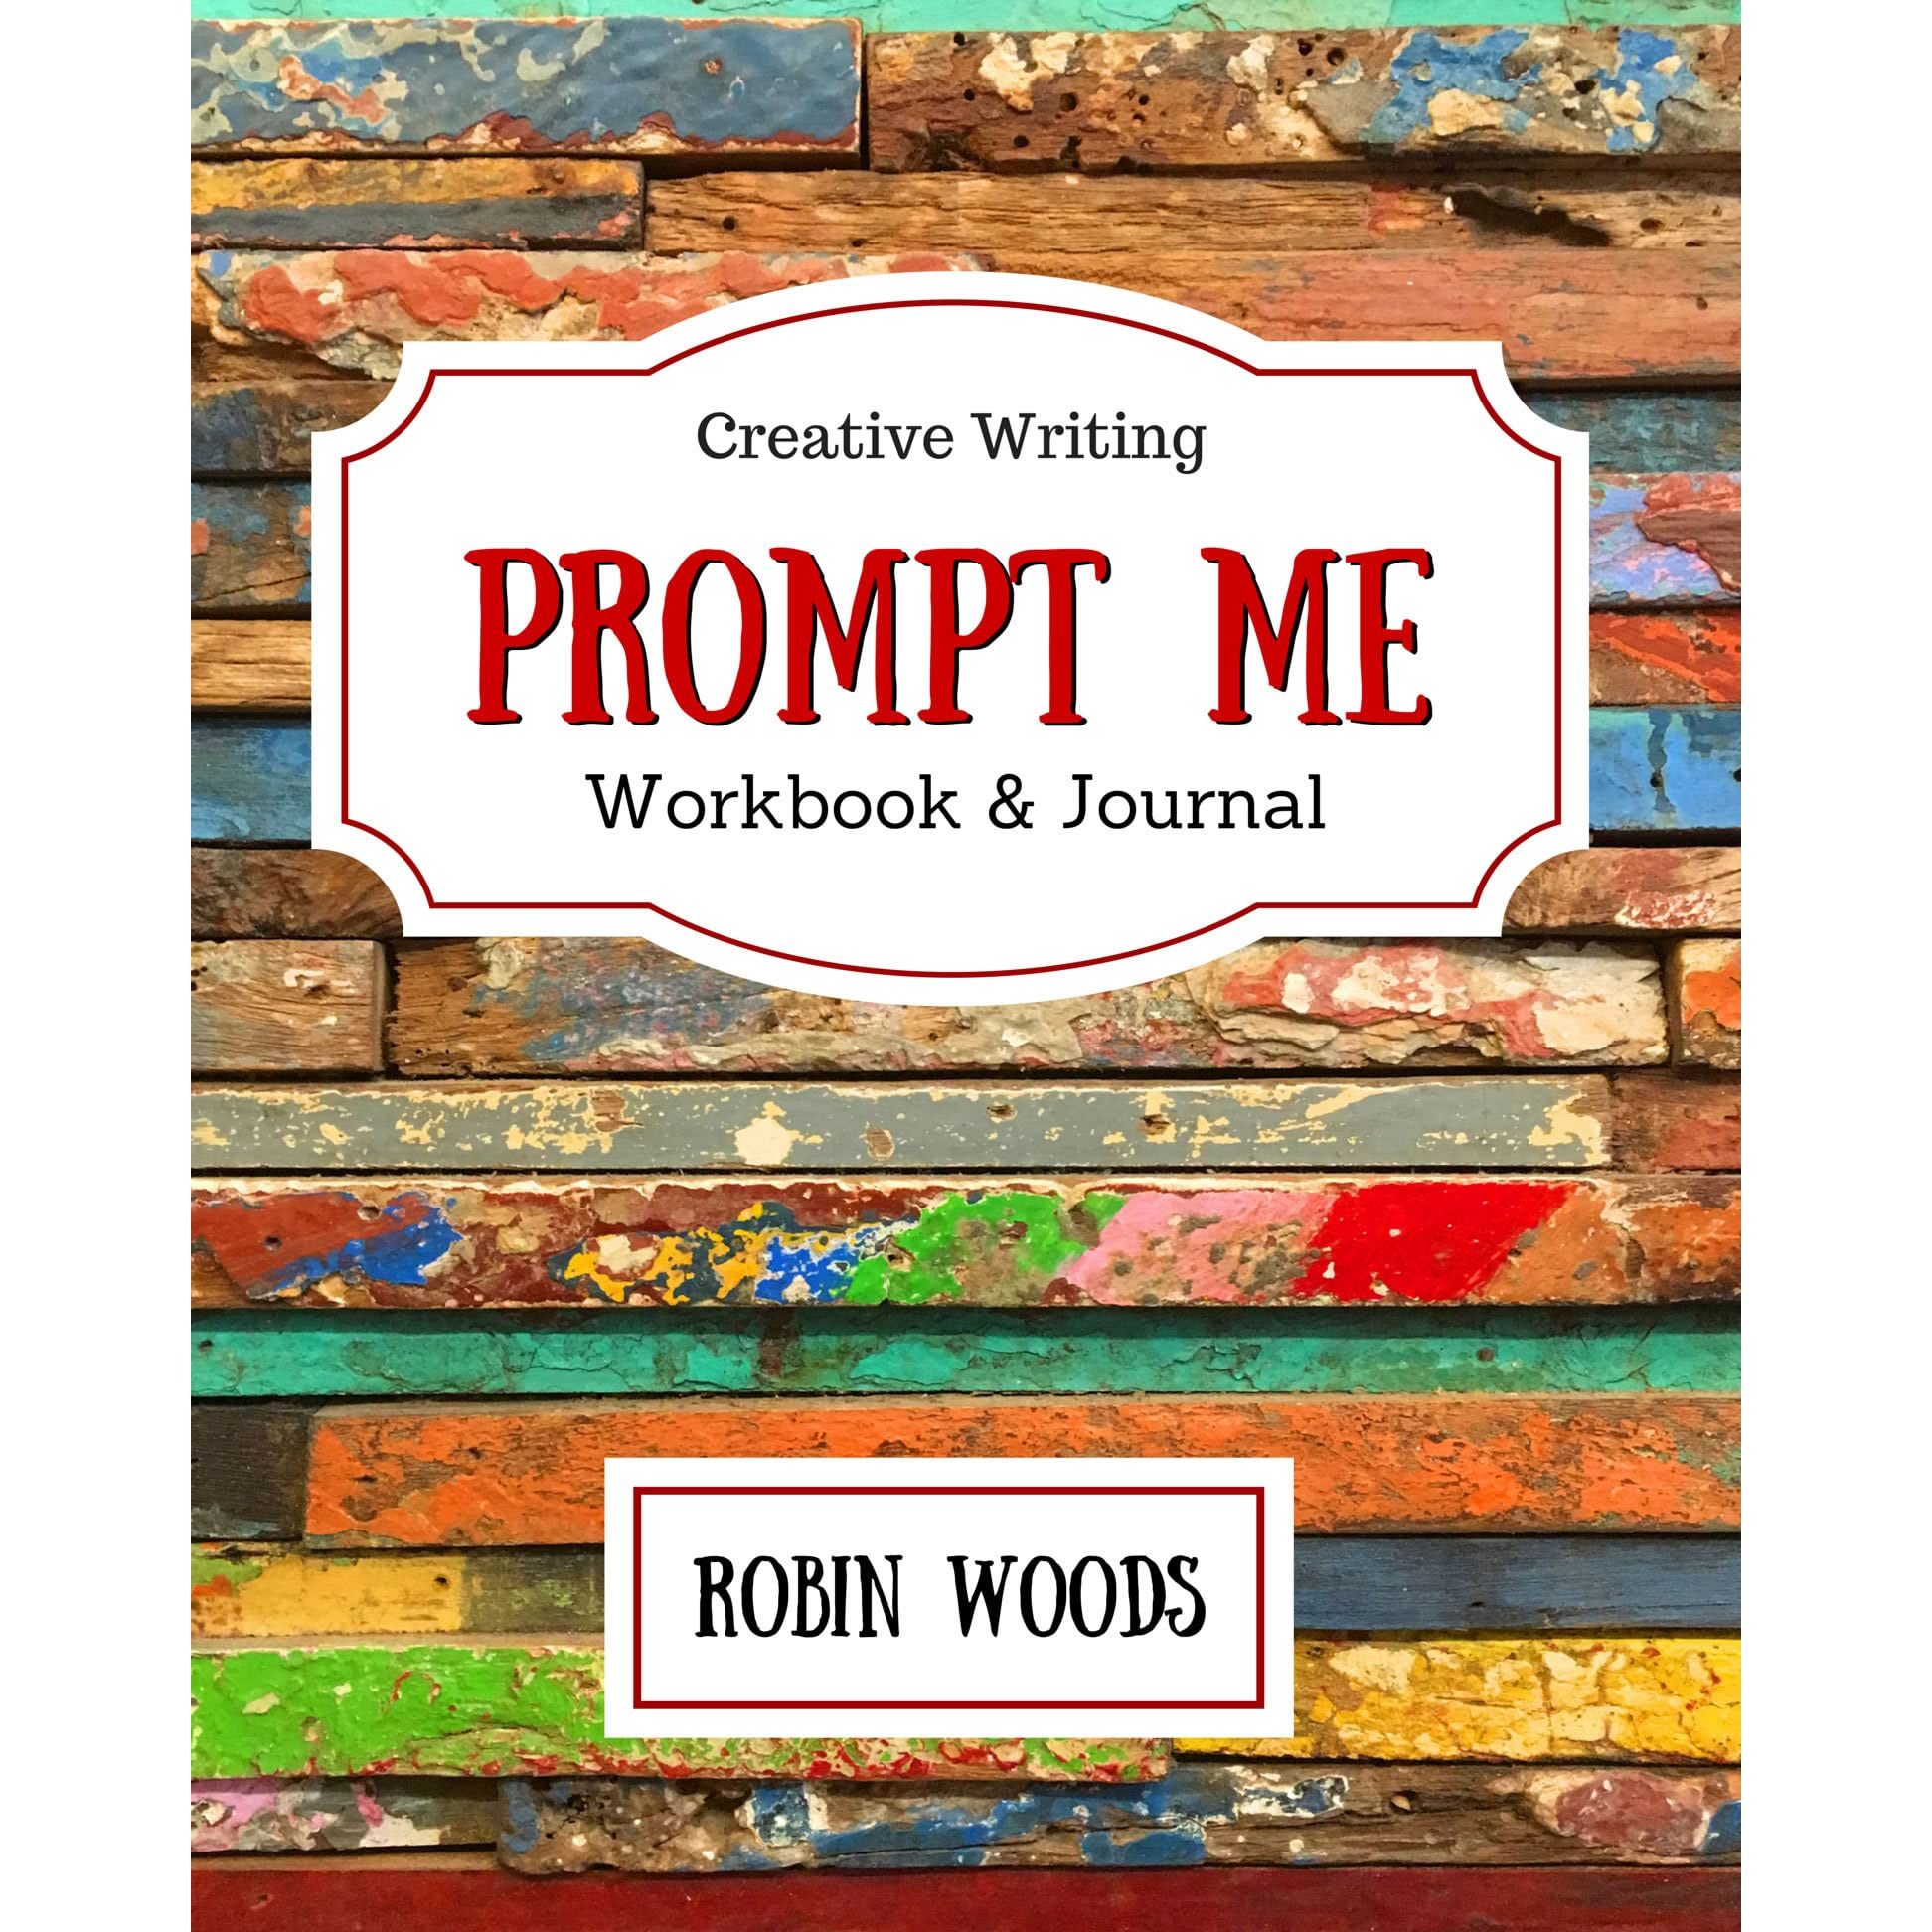 best book to learn creative writing How to teah reative writing source creative writing ideas for teens the best writing prompt the characteristic of the book you read in a creative writing.